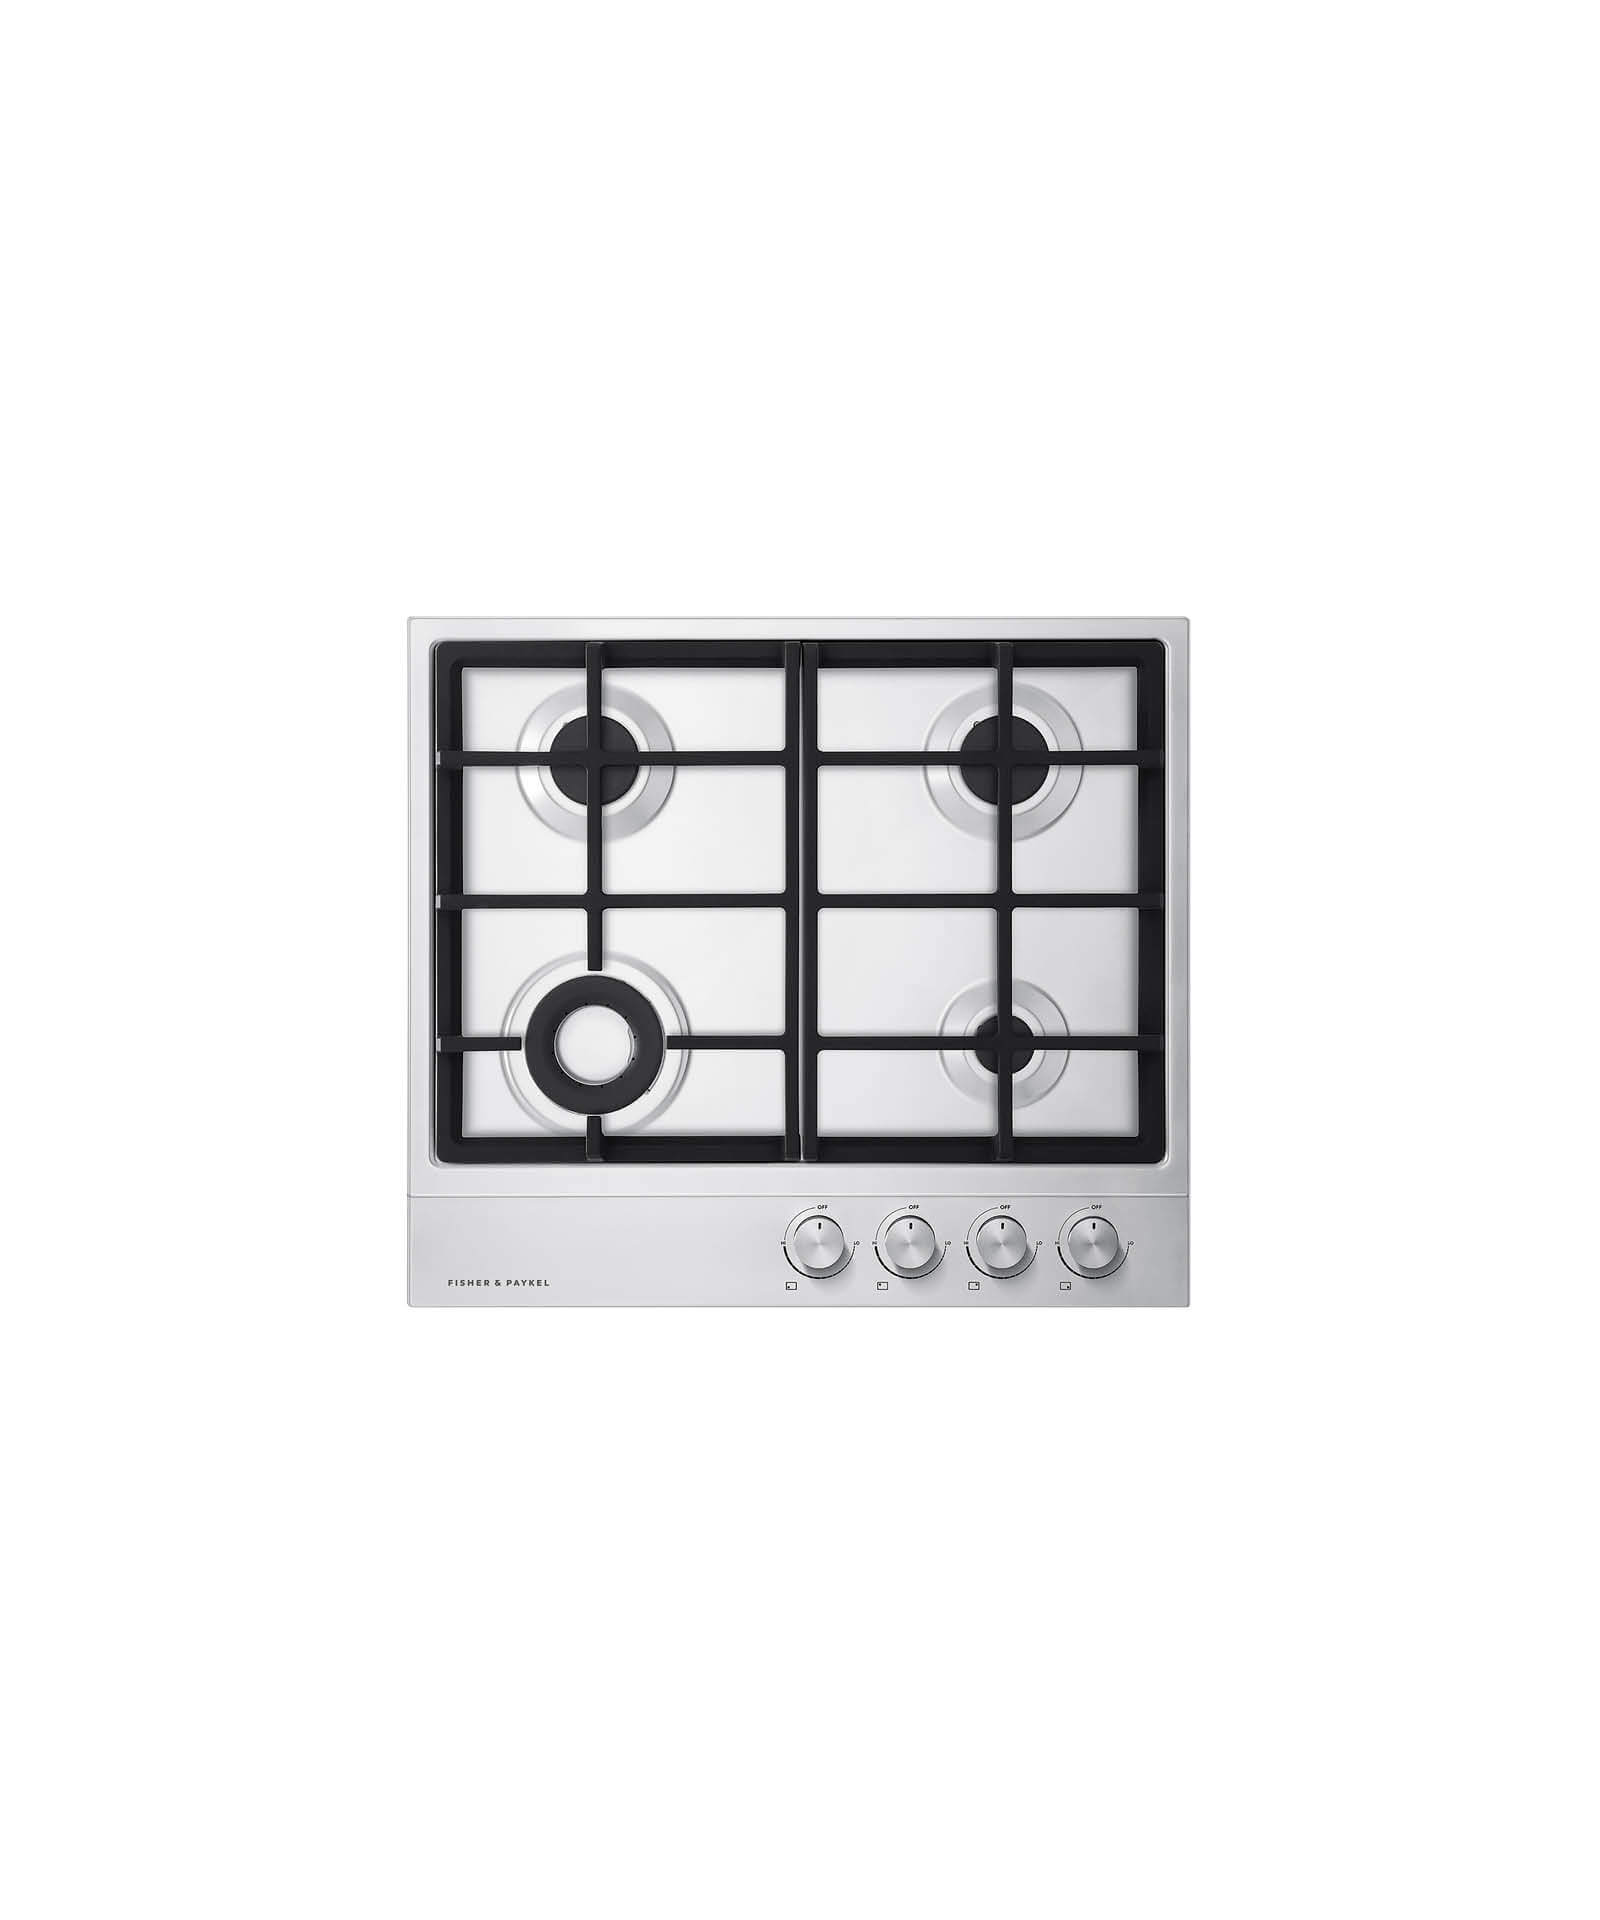 "Fisher and Paykel Gas on Steel Cooktop 24"" 4 Burner (LPG)"